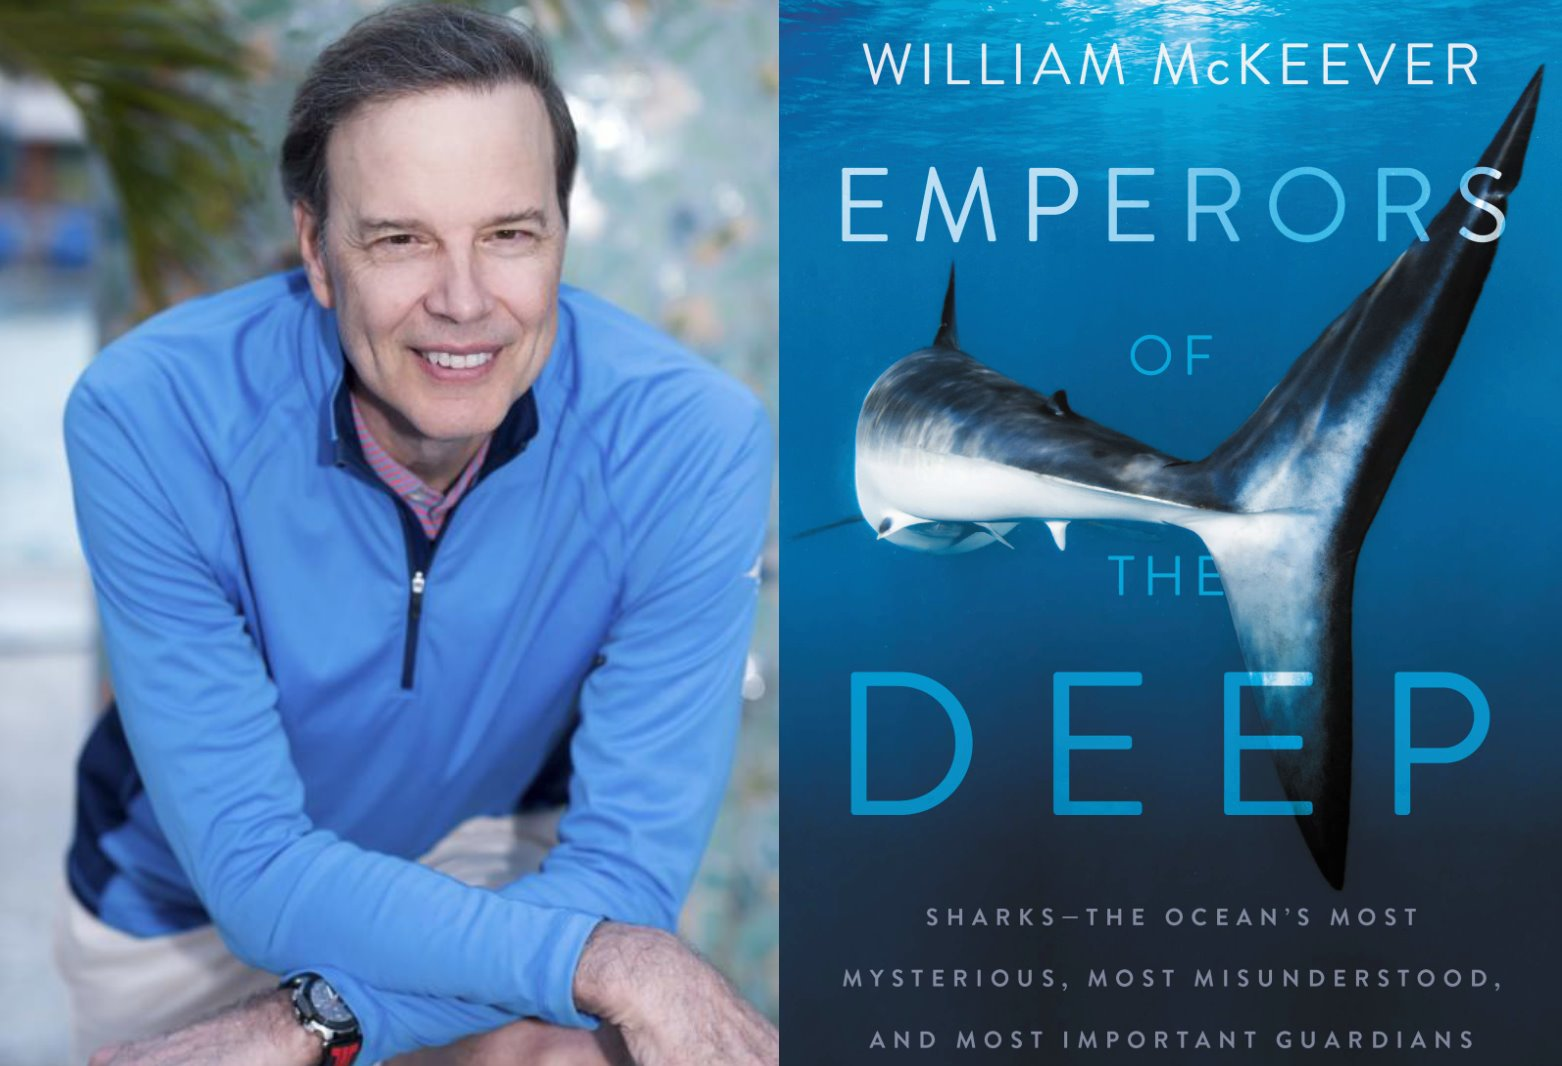 Oct 17th – WATCH & DISCUSS: Emperors of the Deep